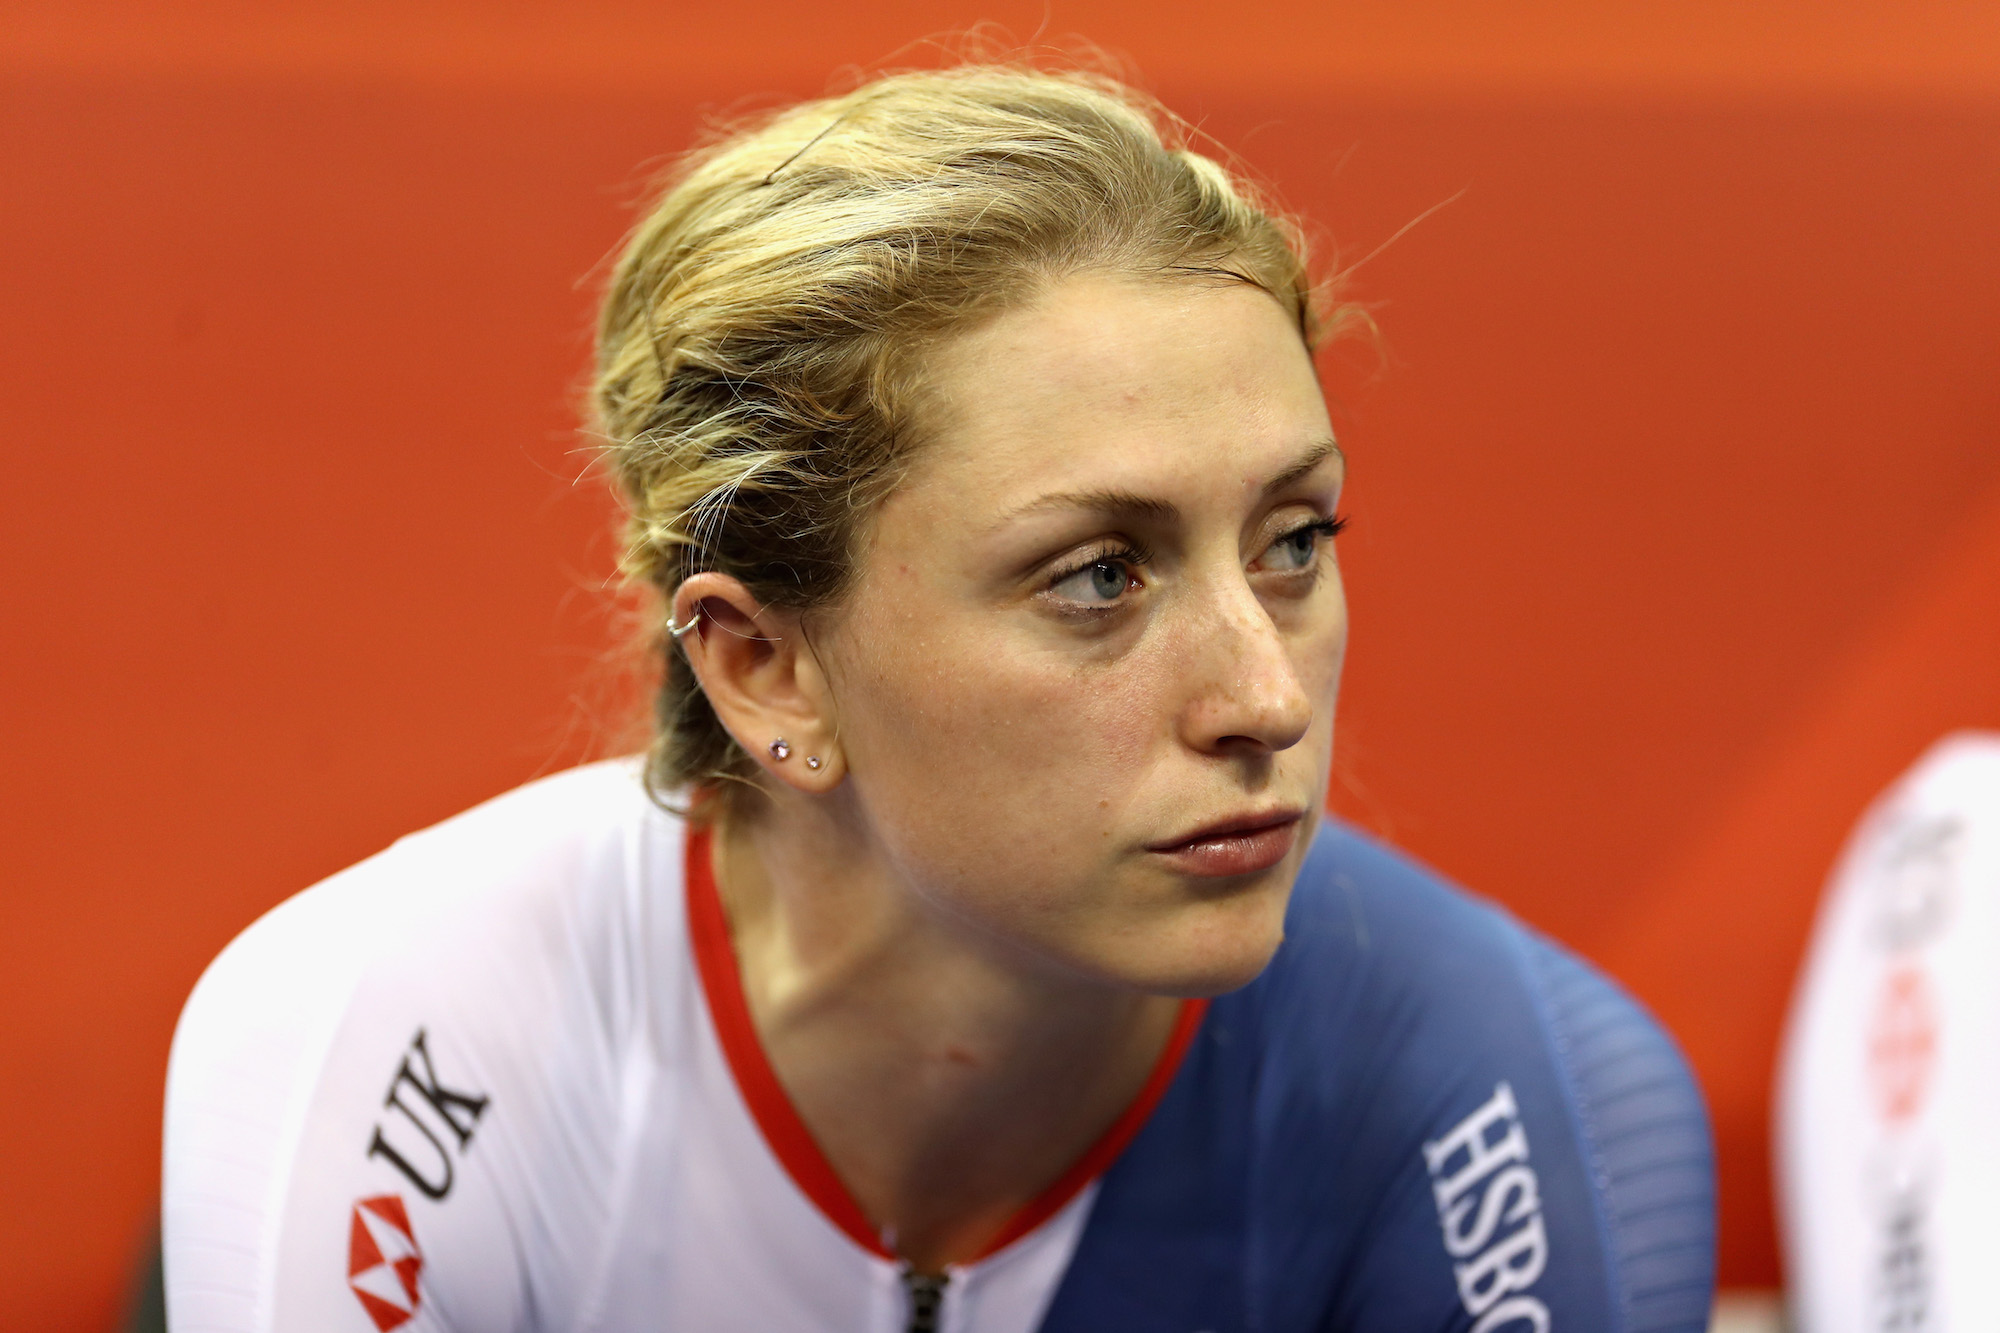 Laura Kenny skips surgery to race World Championships after nasty crash - Cycling Weekly